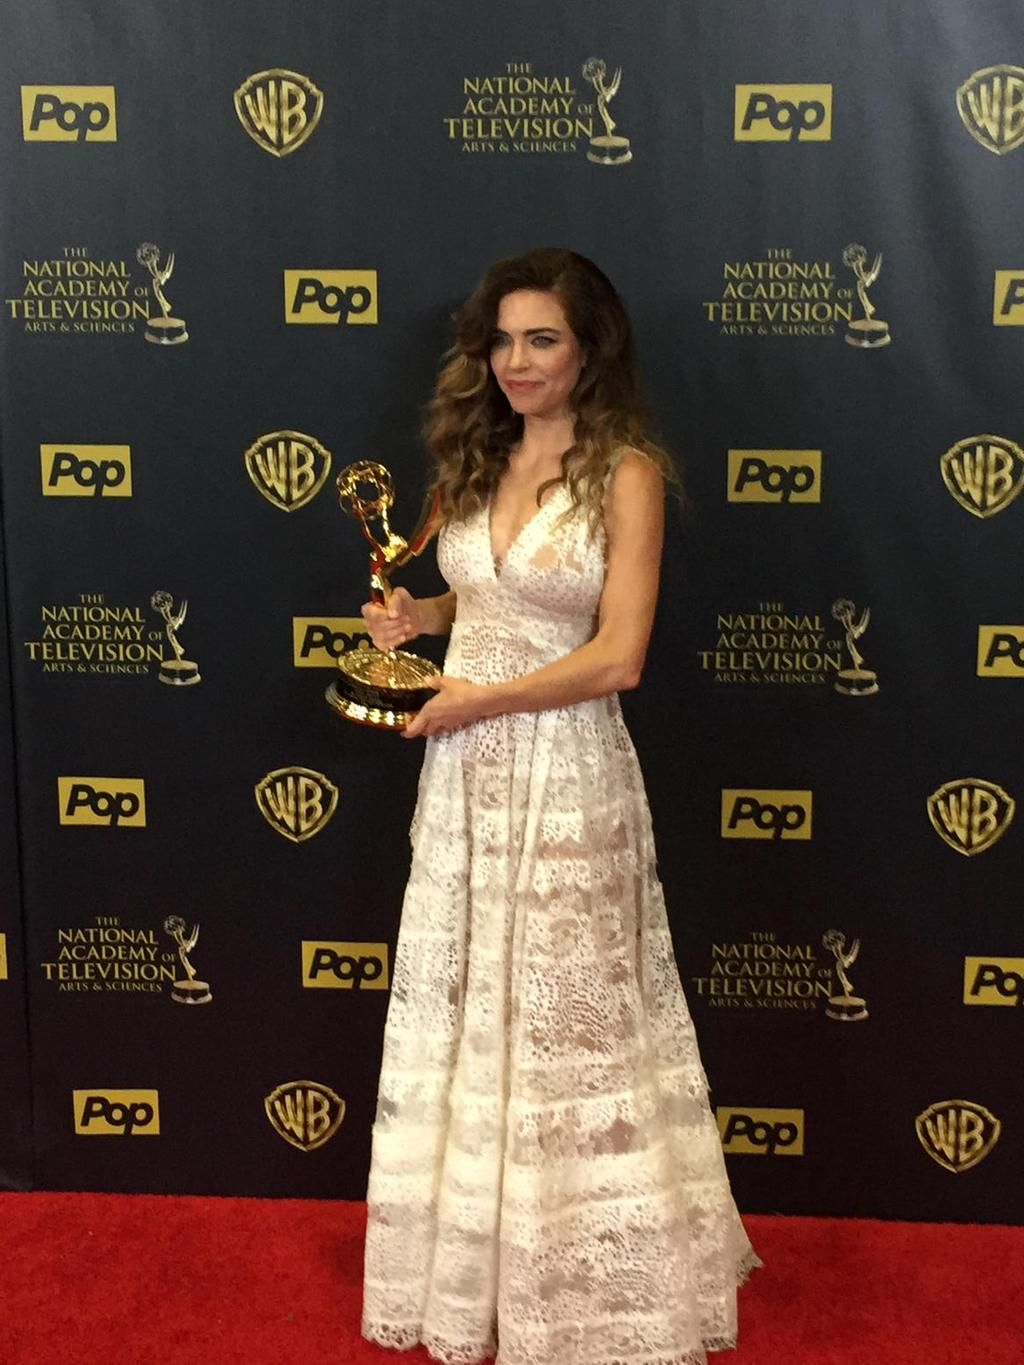 "Young and Restless on Twitter: "".@marchpemberley & her #DaytimeEmmys trophy for Outstanding Supporting Actress! http://t.co/udqIBz3IJ9"""